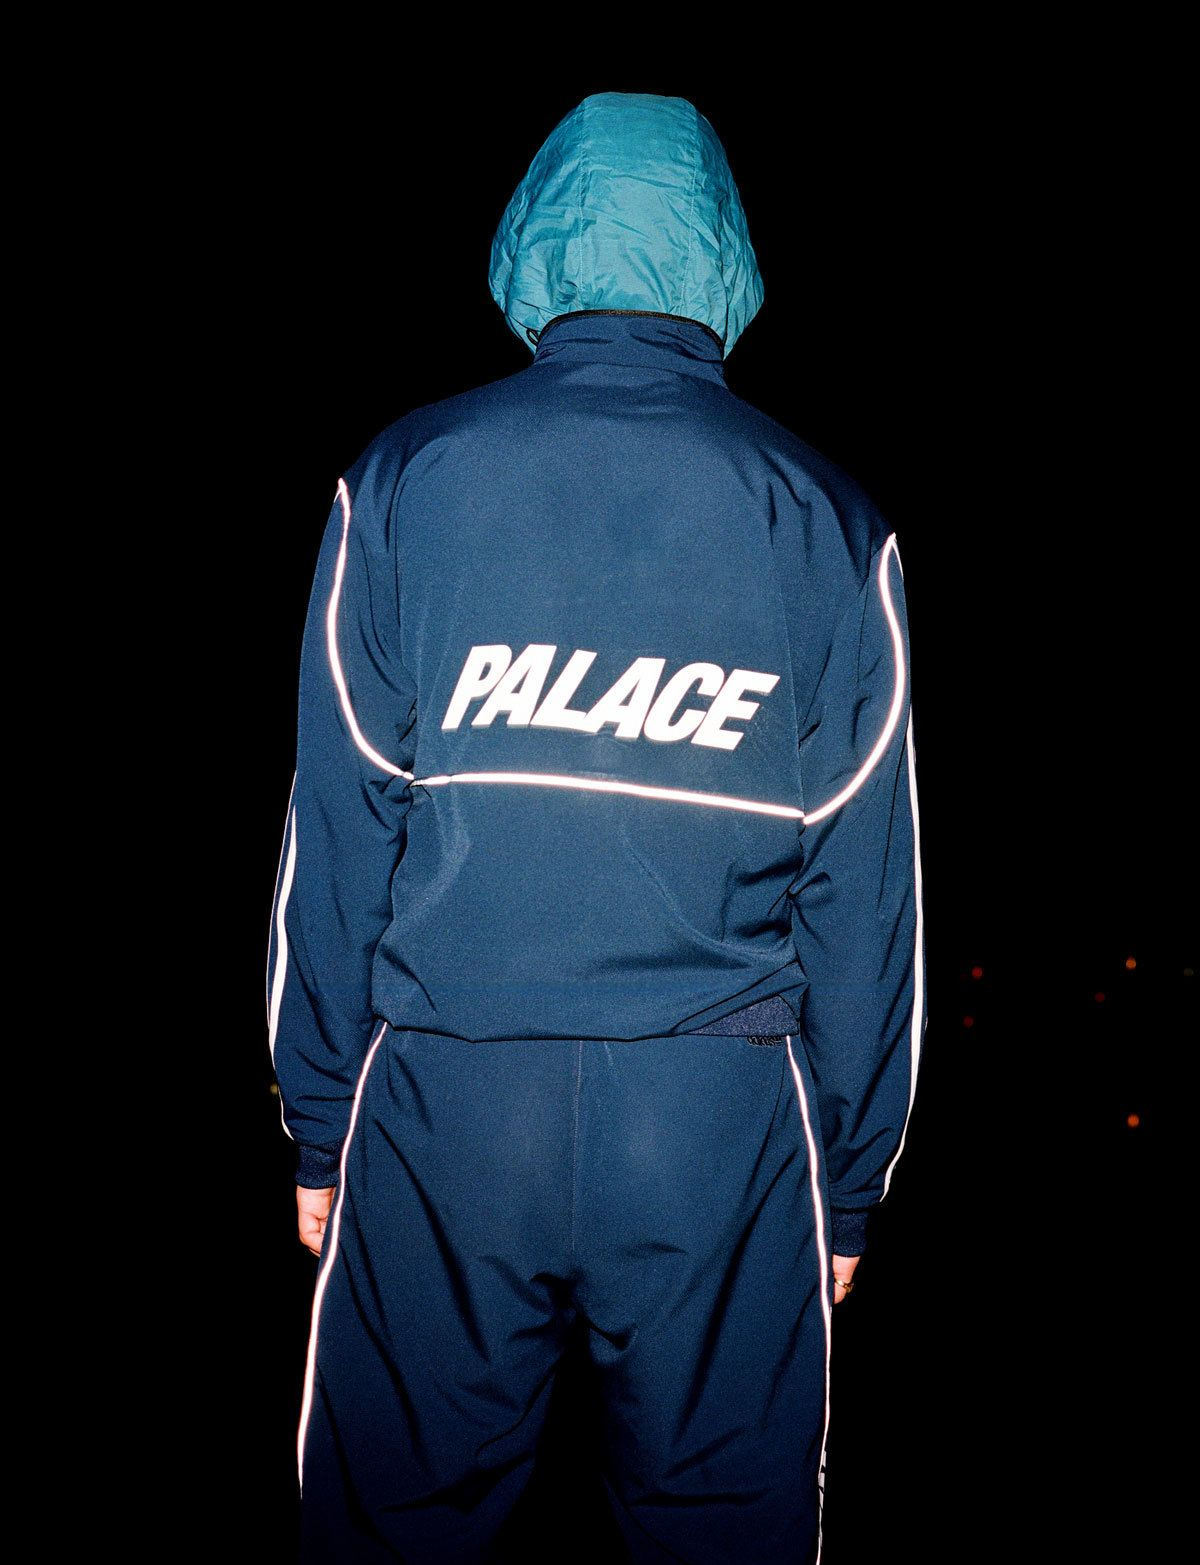 exclusive: palace and adidas launch new collection | Half